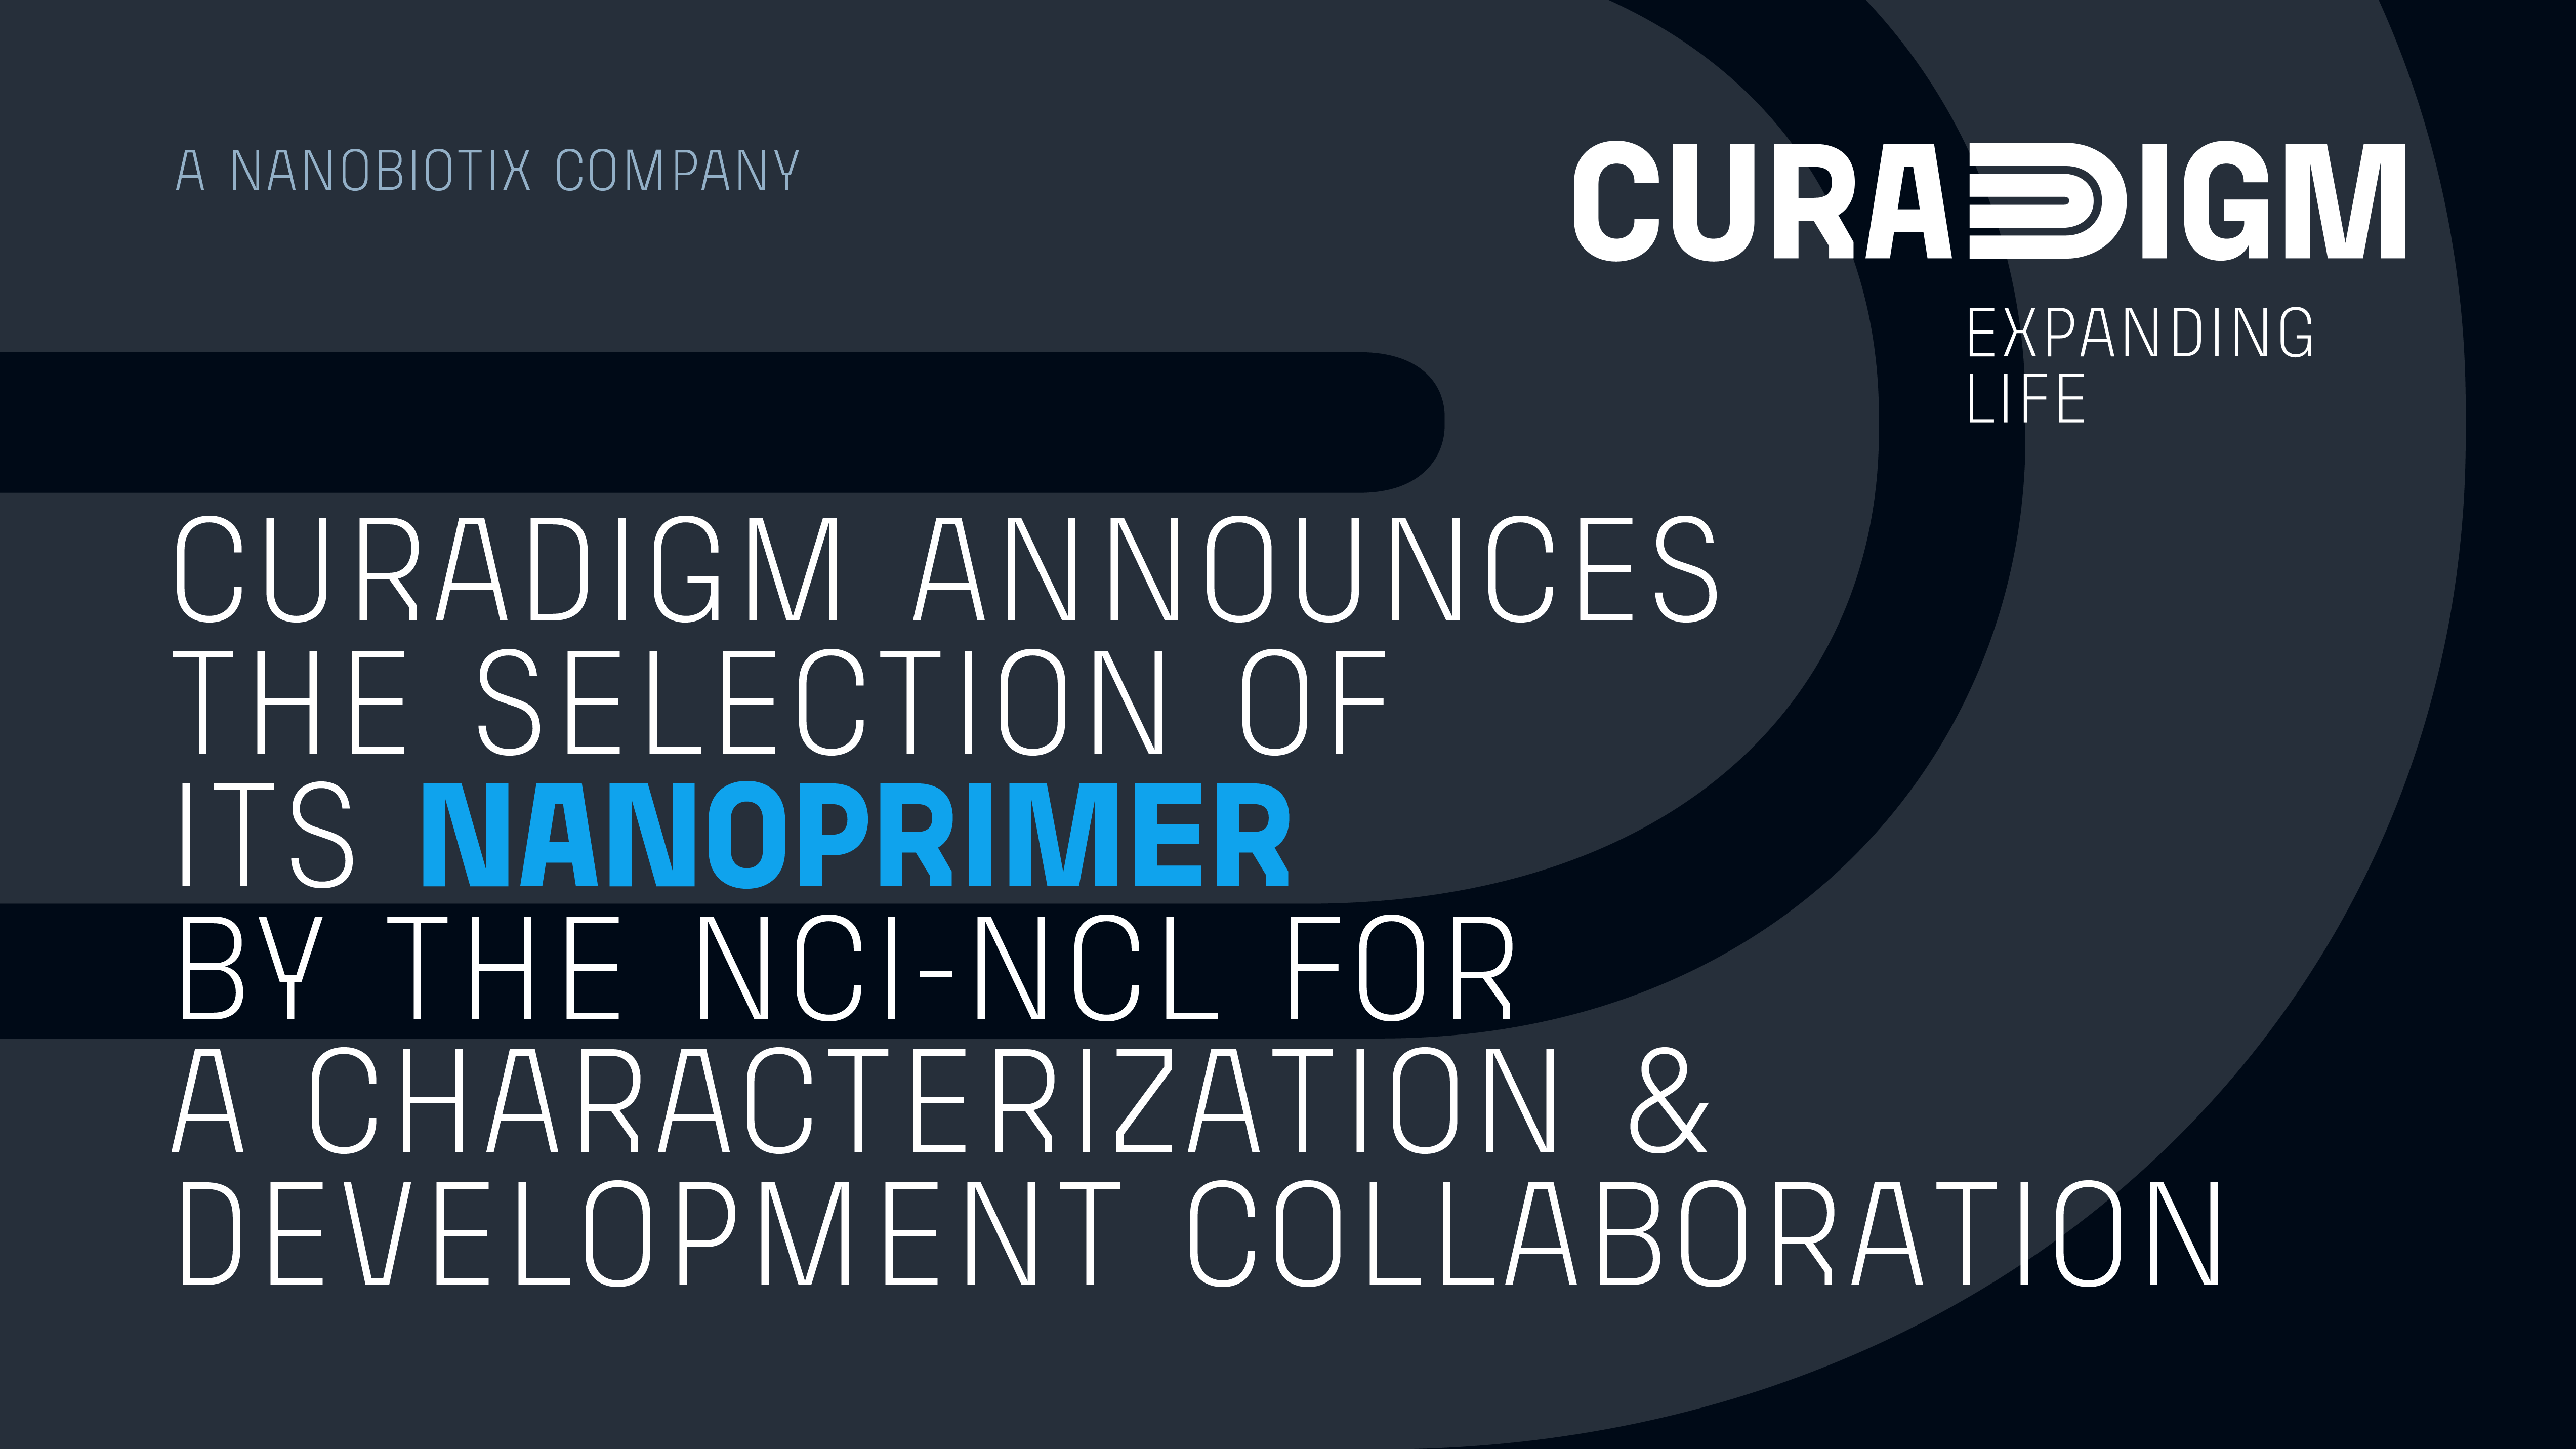 CURADIGM ANNOUNCES THE SELECTION OF ITS NANOPRIMER TECHNOLOGY BY THE NATIONAL CANCER INSTITUTE